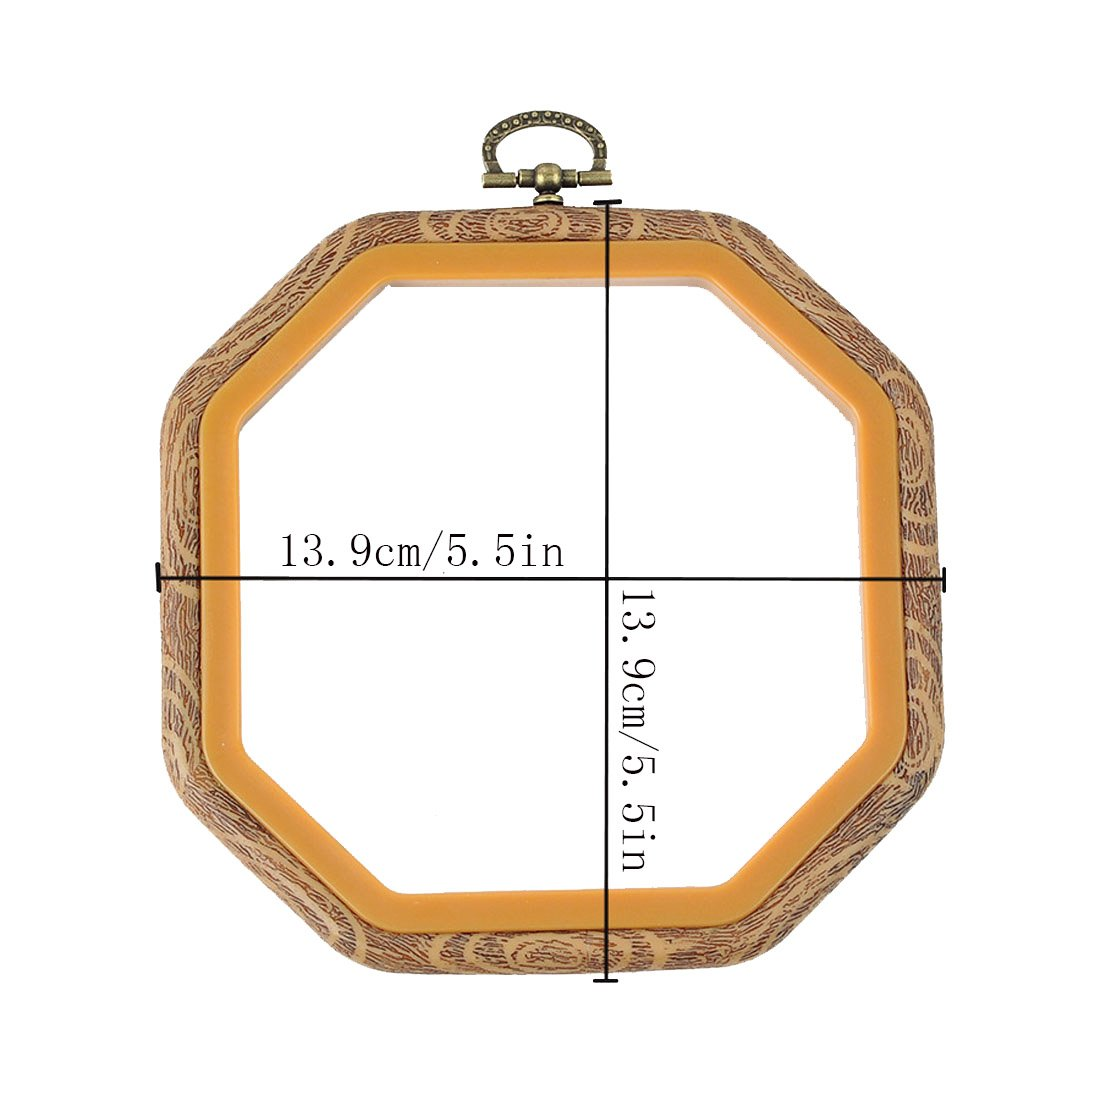 2 Pcs Octagon Embroidery Hoops Cross Stitch Hoop Bulk Imitated Wood